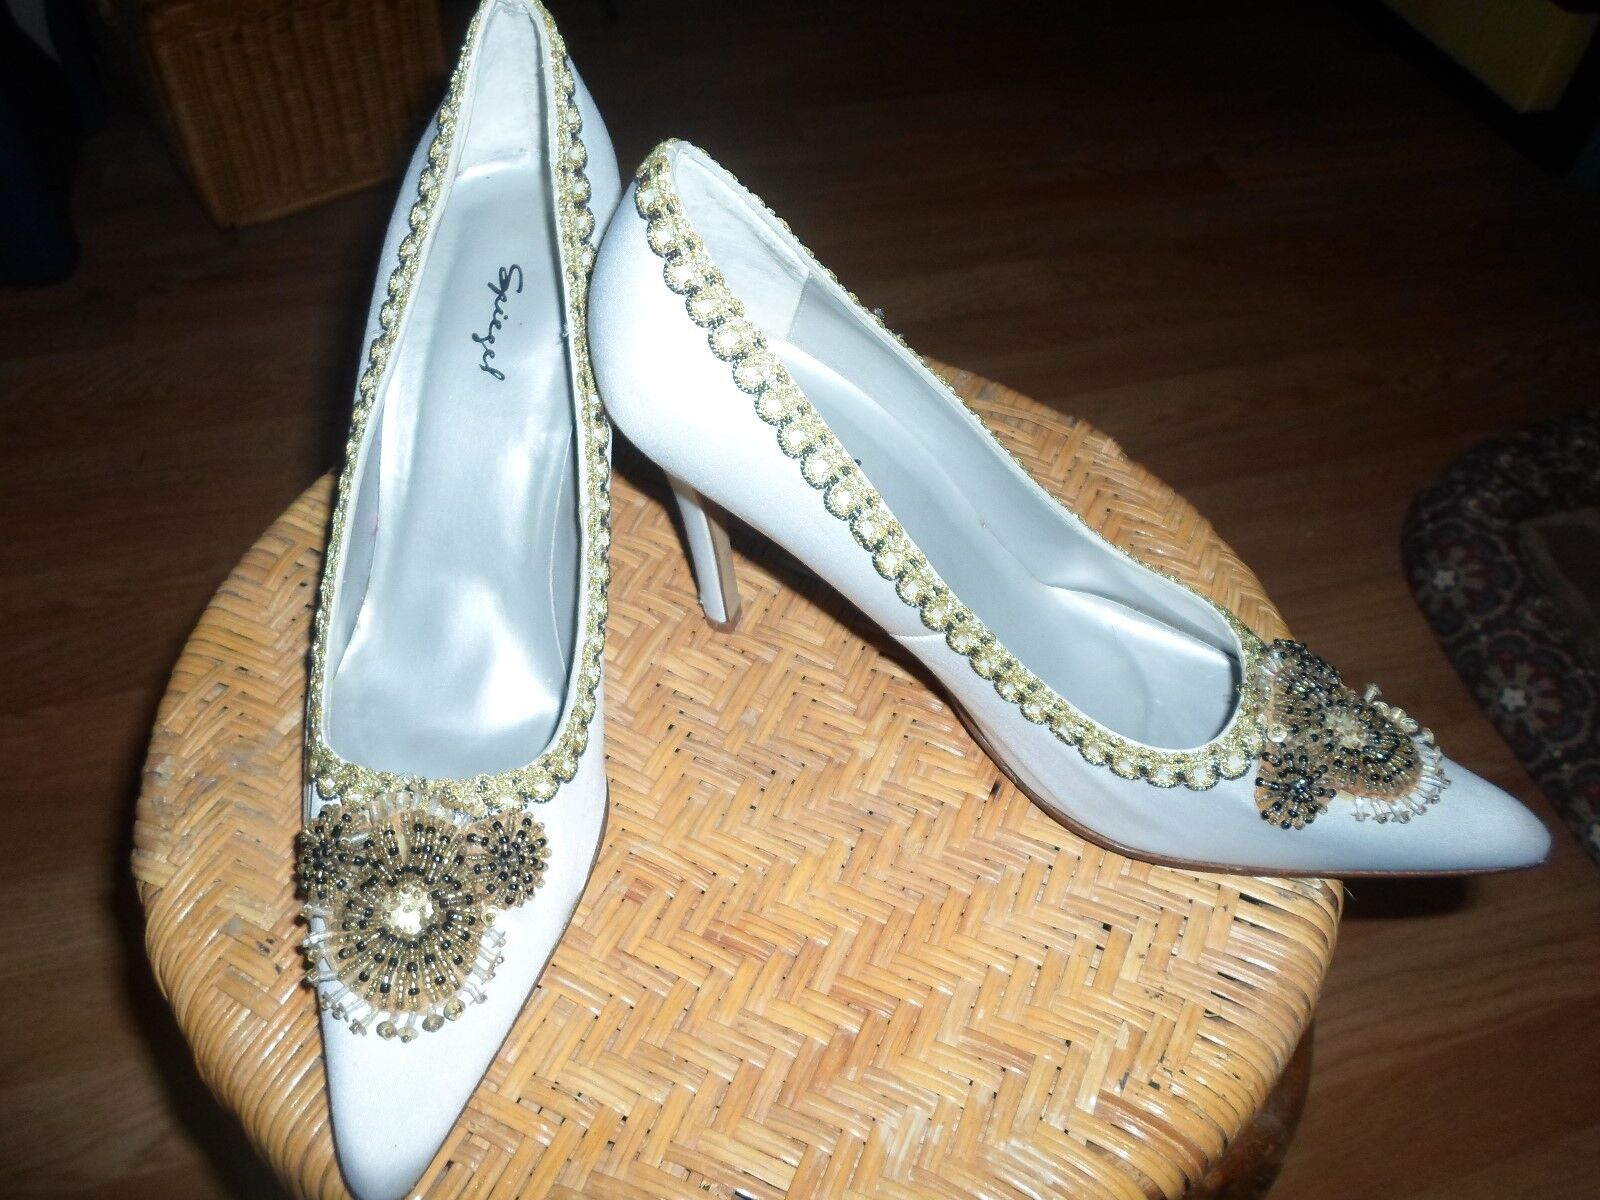 Vintage Spiegel 8 8 8 Pinup VLV Cream Satin Beaded Feather Heels bdd9b3